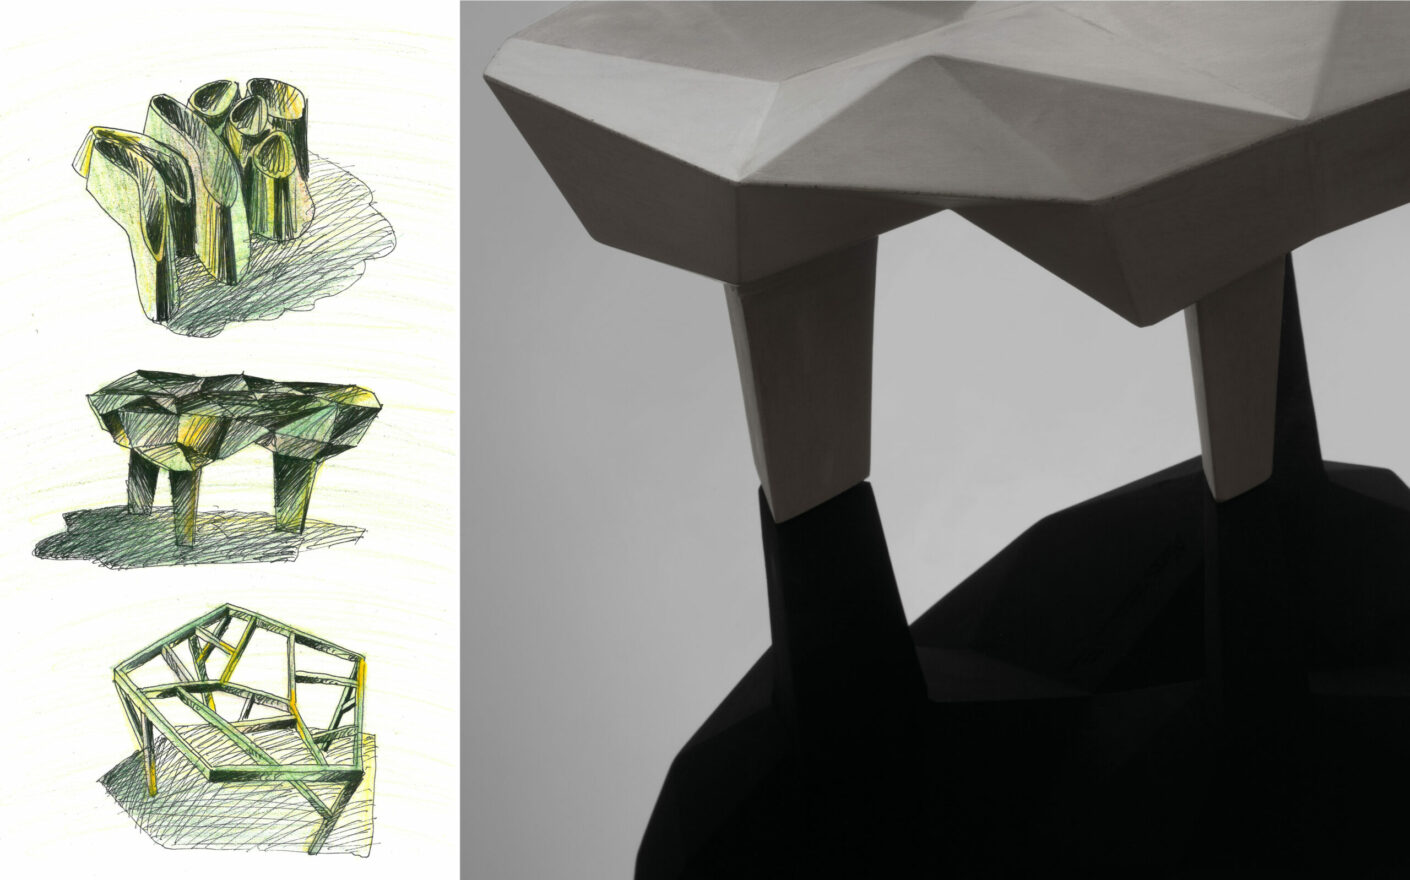 Out of scale art drawings by Mario Trimarchi for Alias and picture showing details of the form.